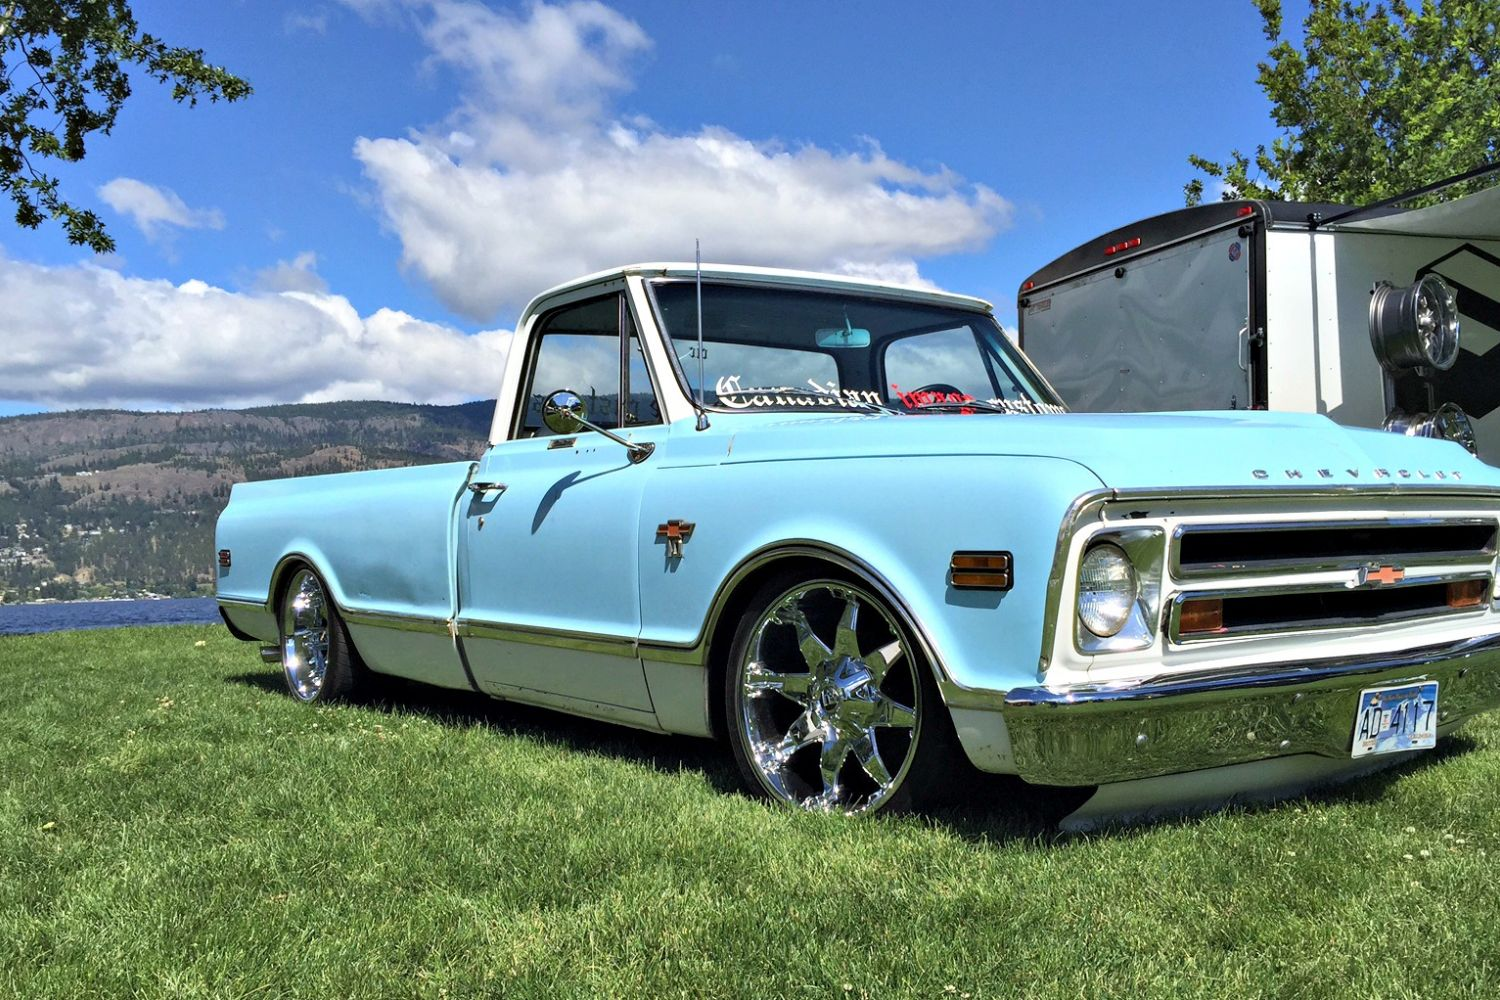 1968 Chevrolet C10 Lowrider Canadian Image Customs Chevy Lifted